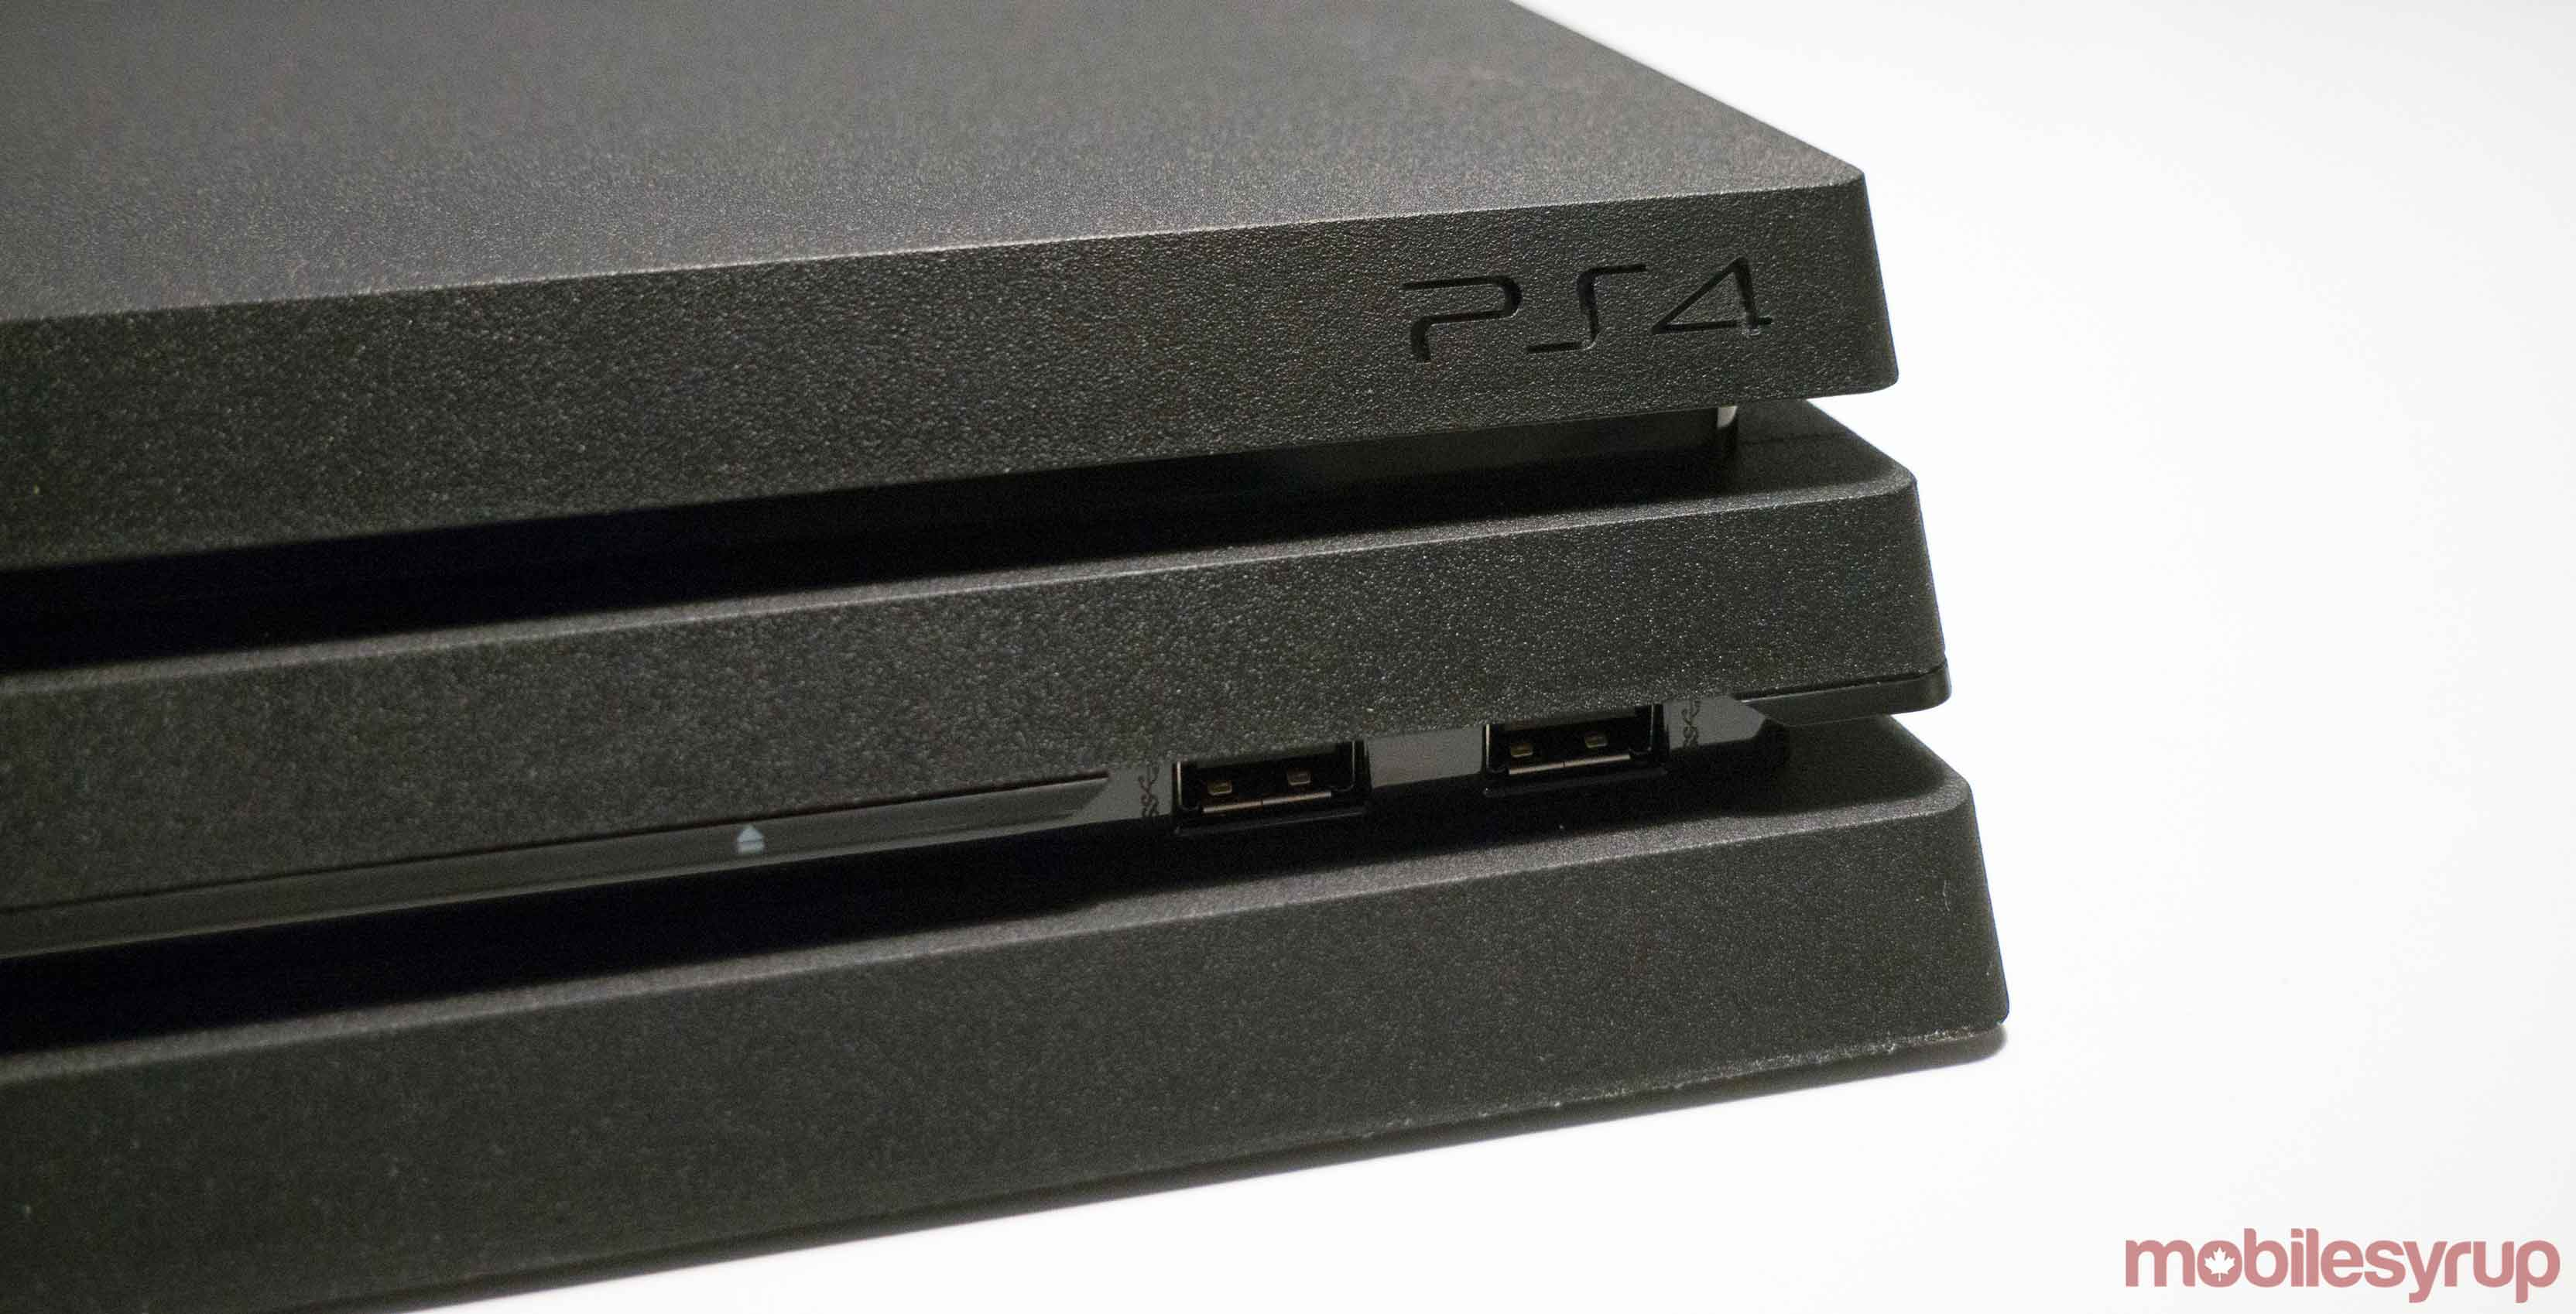 Sony PlayStation 5 unlikely to launch before 2020